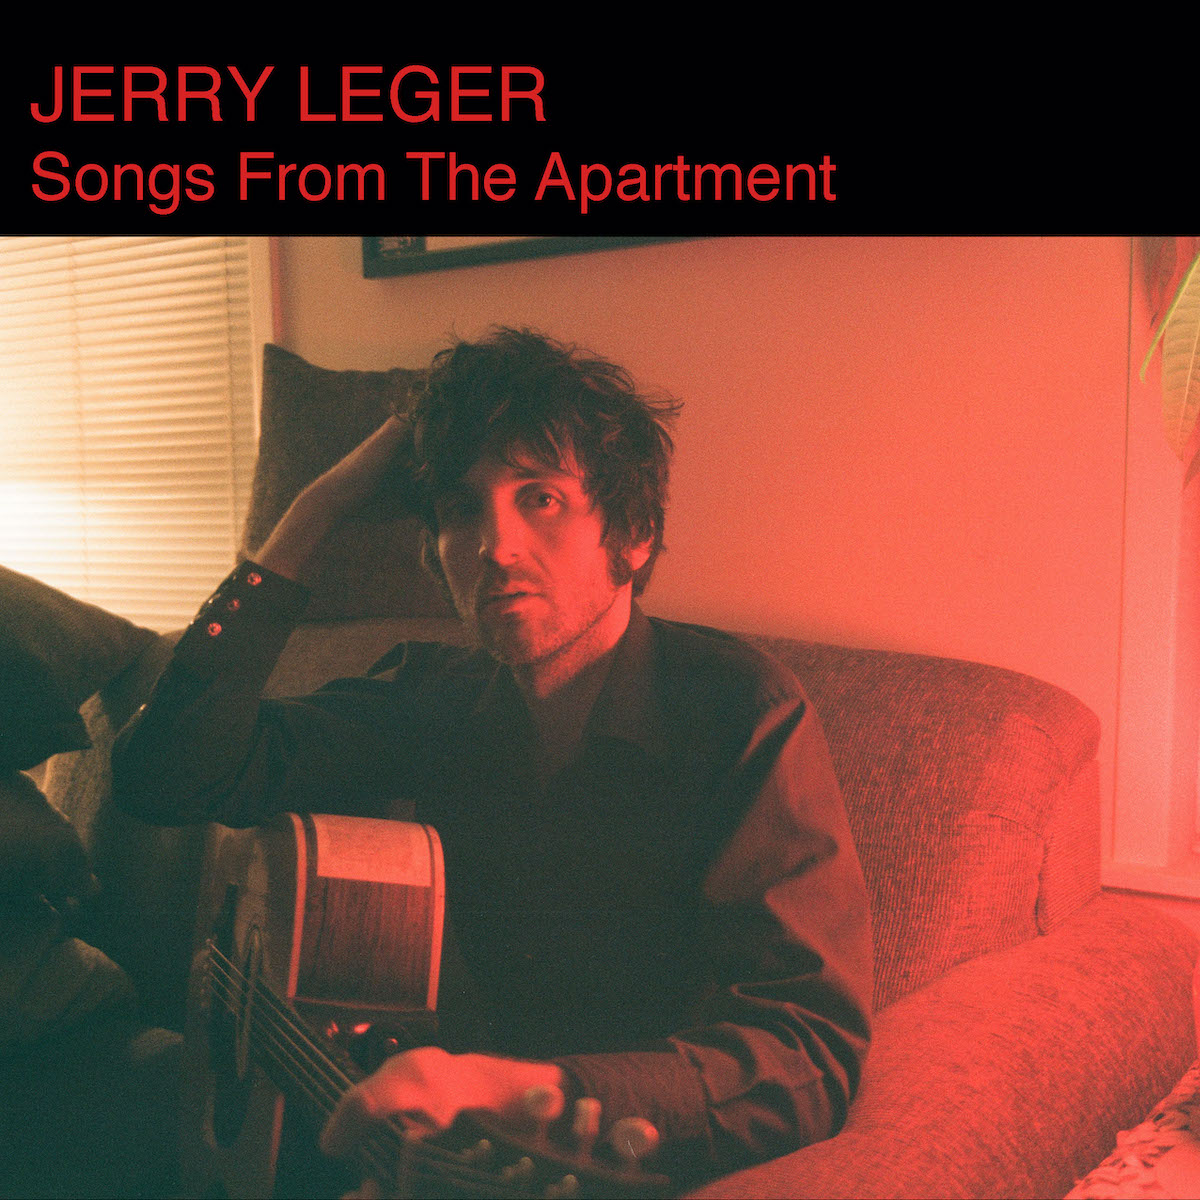 Jerry Leger - Songs From The Apartment album cover